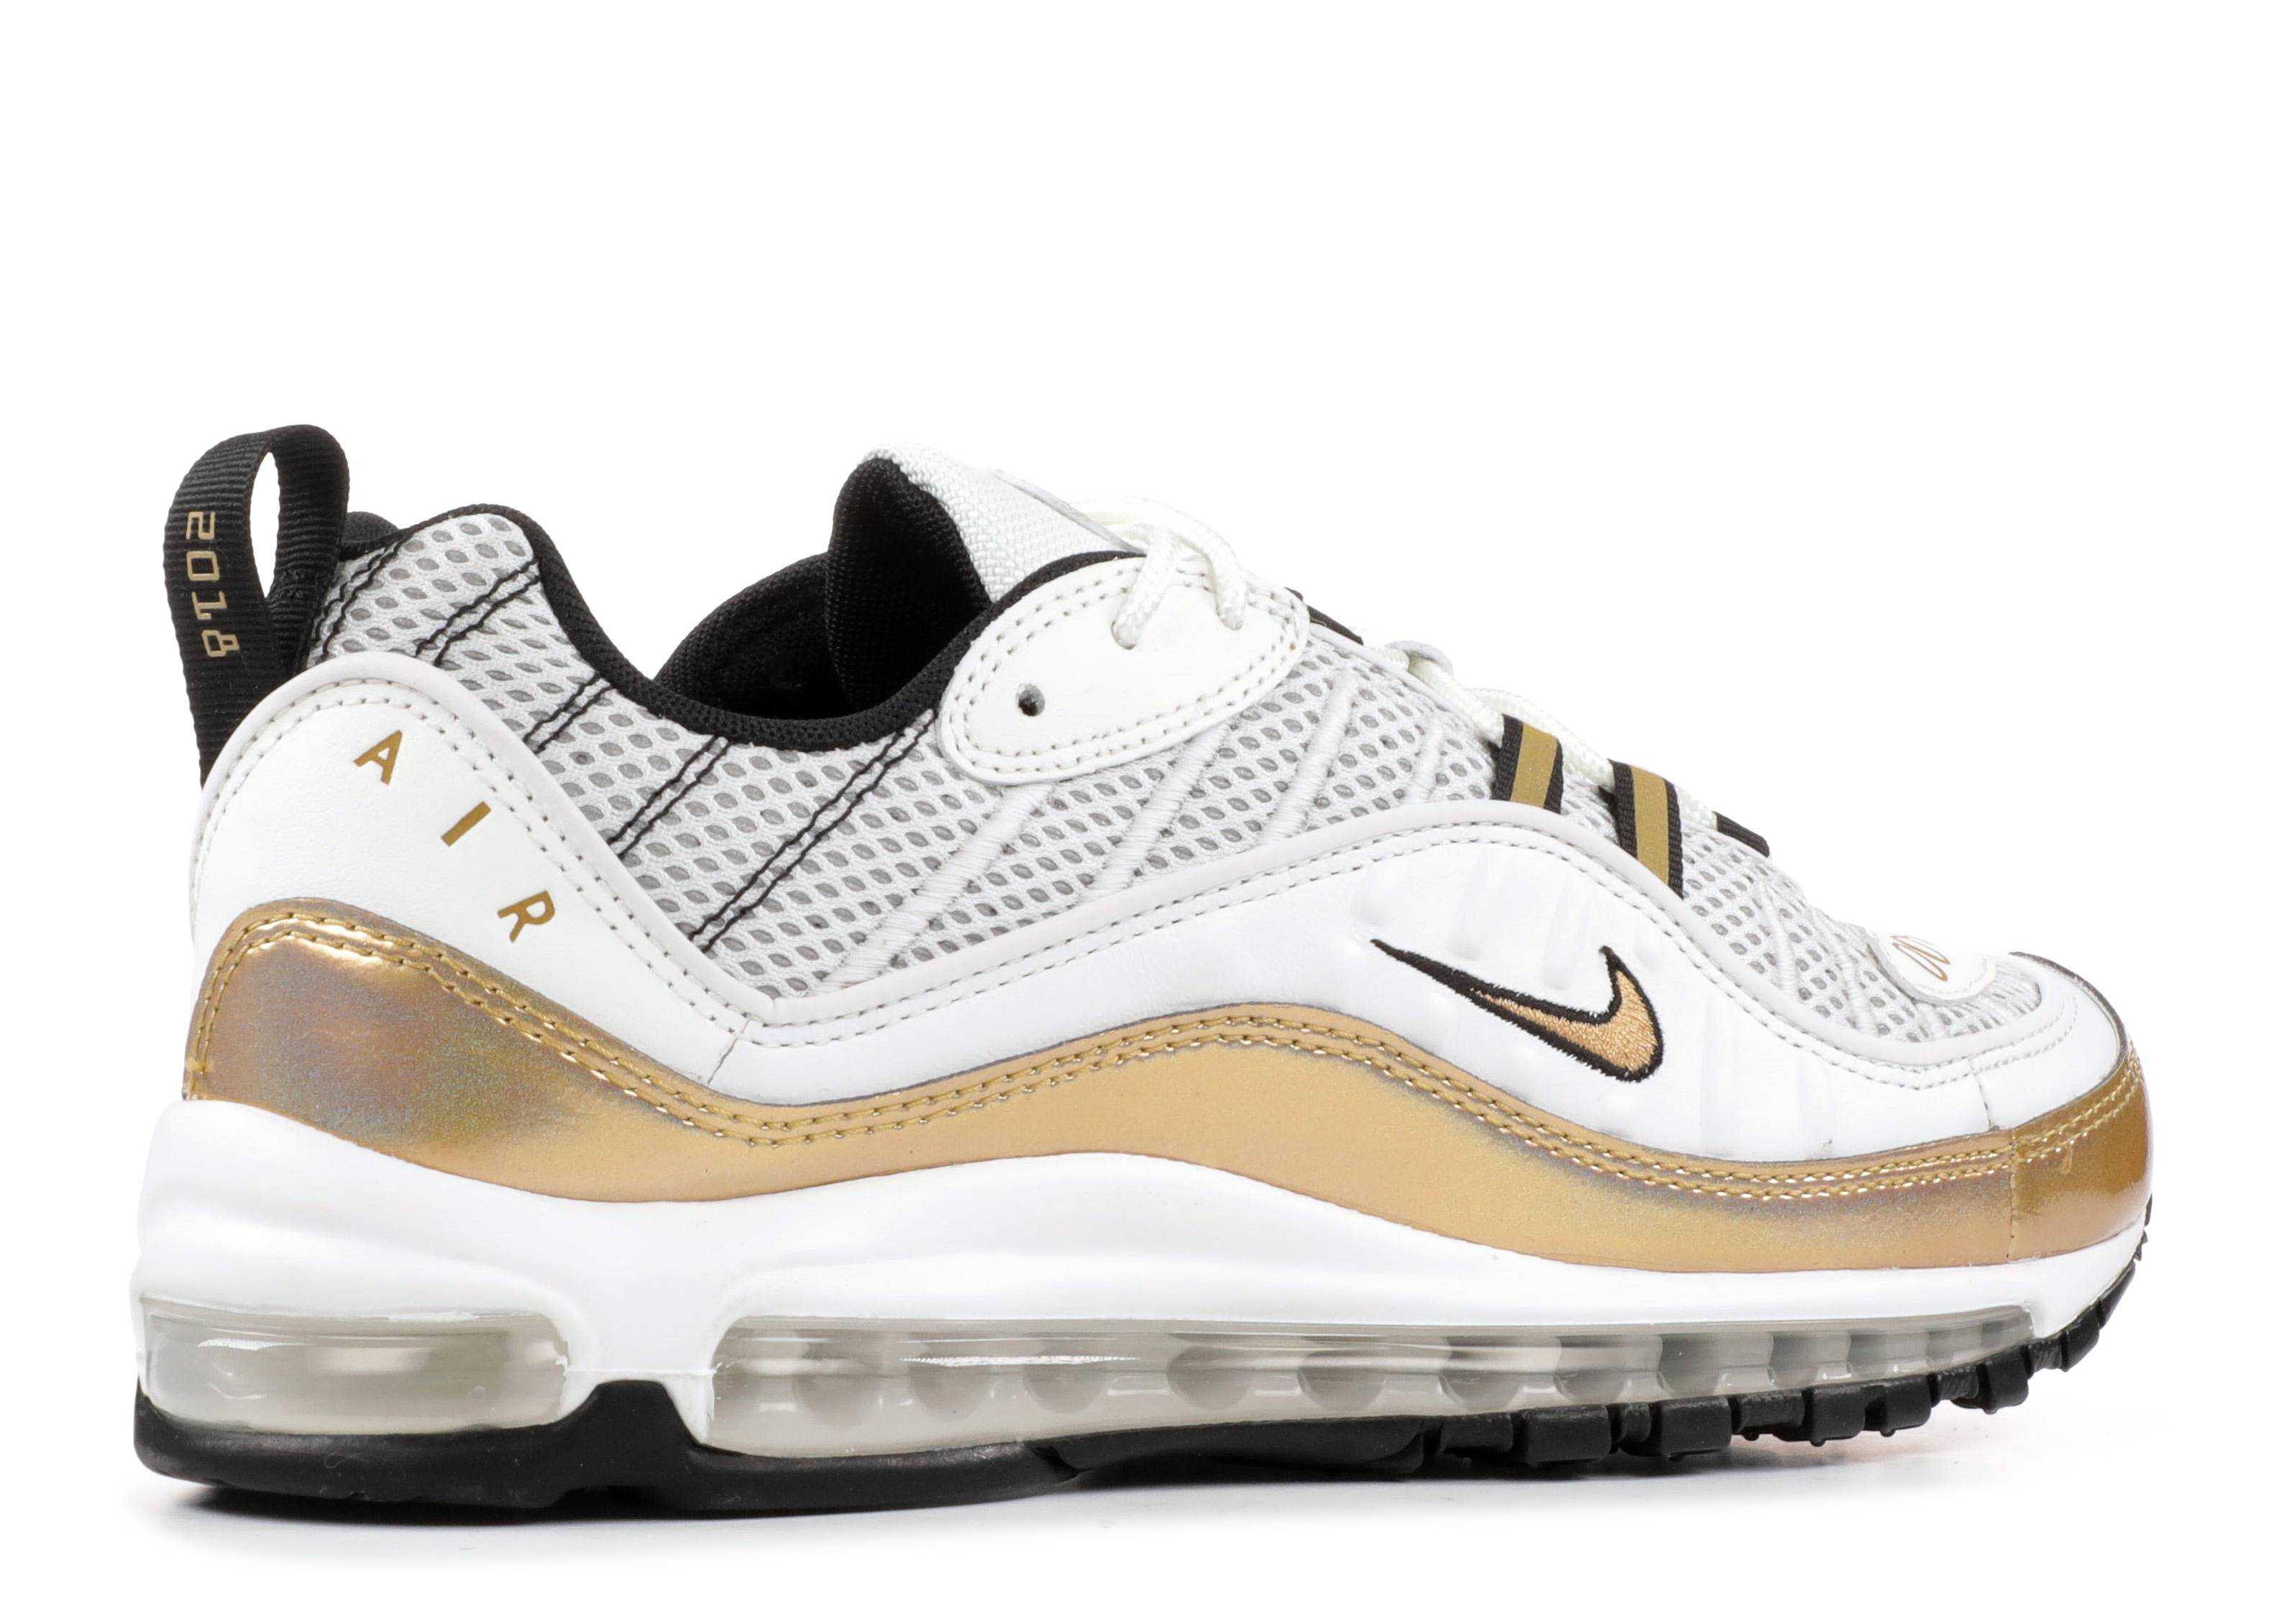 separation shoes 41a91 35eae Air Max 98 Uk